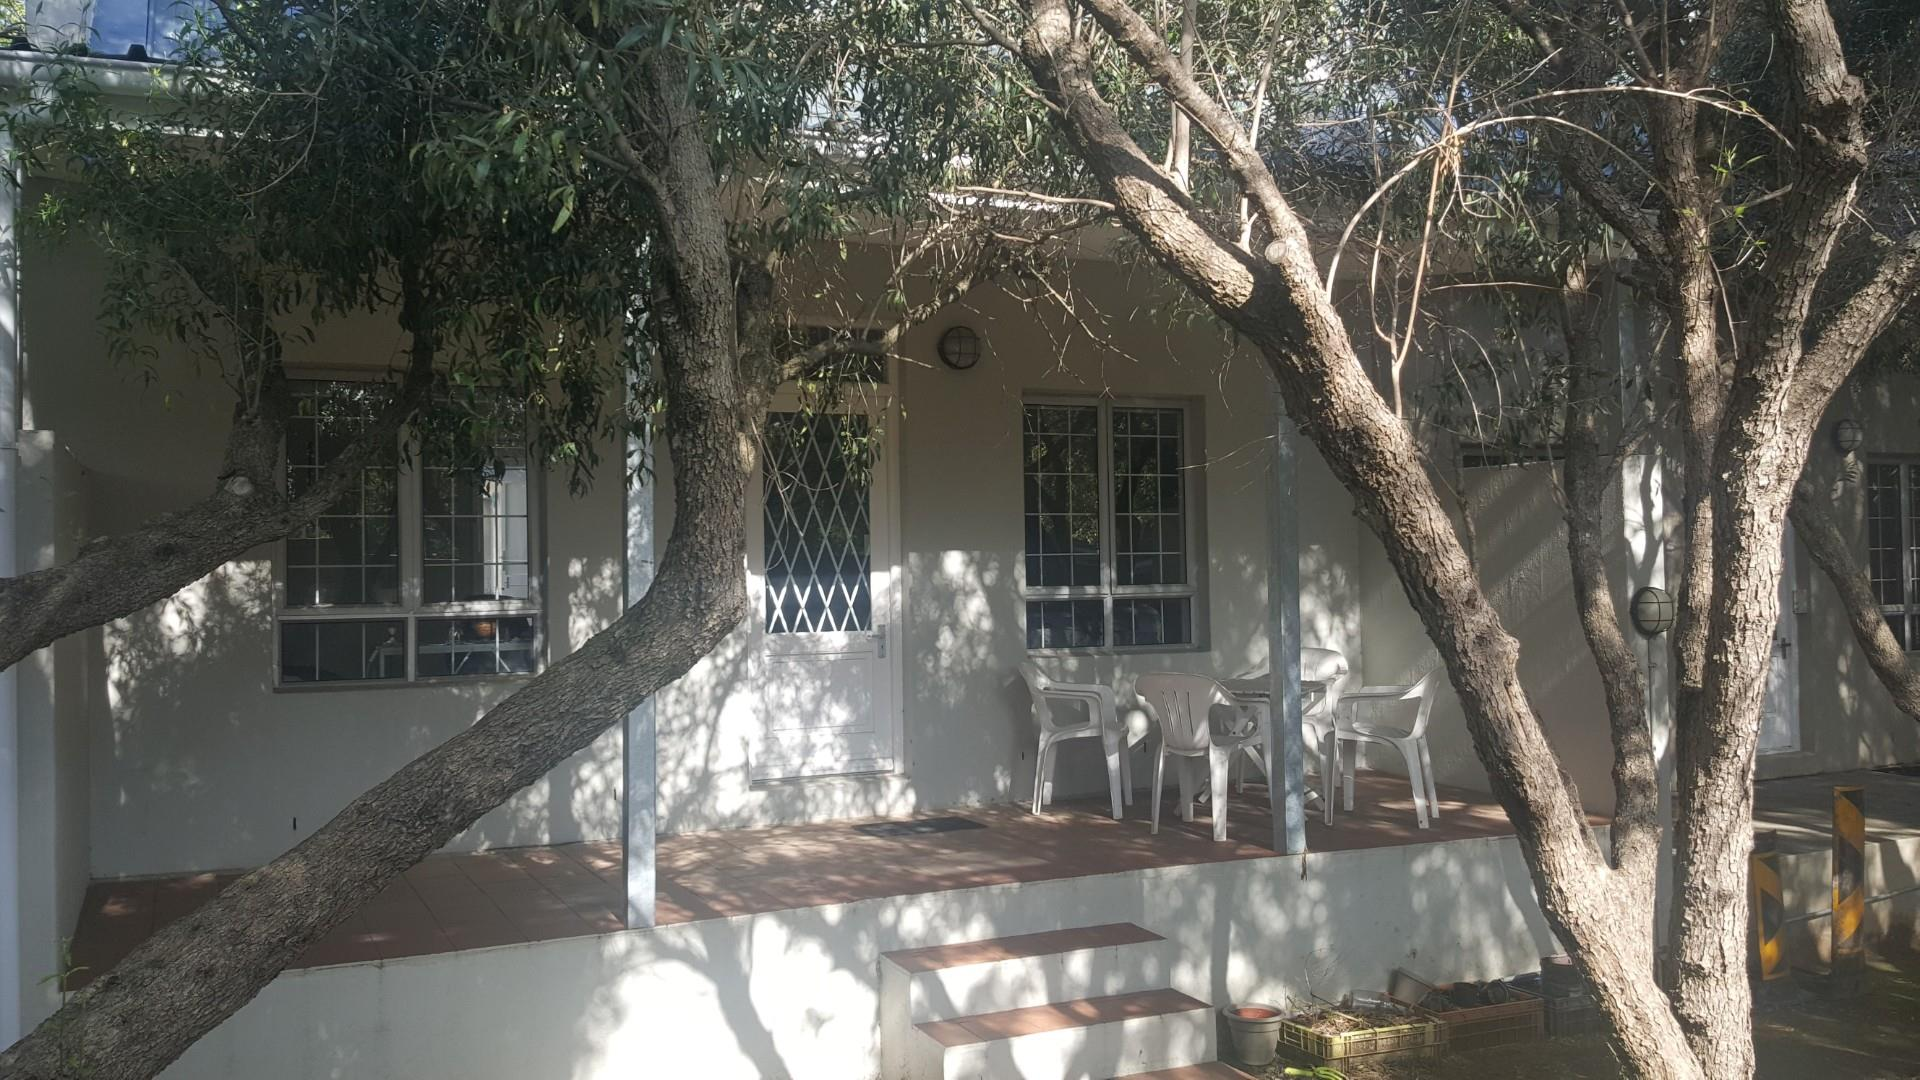 2 Bedroom Townhouse For Sale in Stellenbosch Central